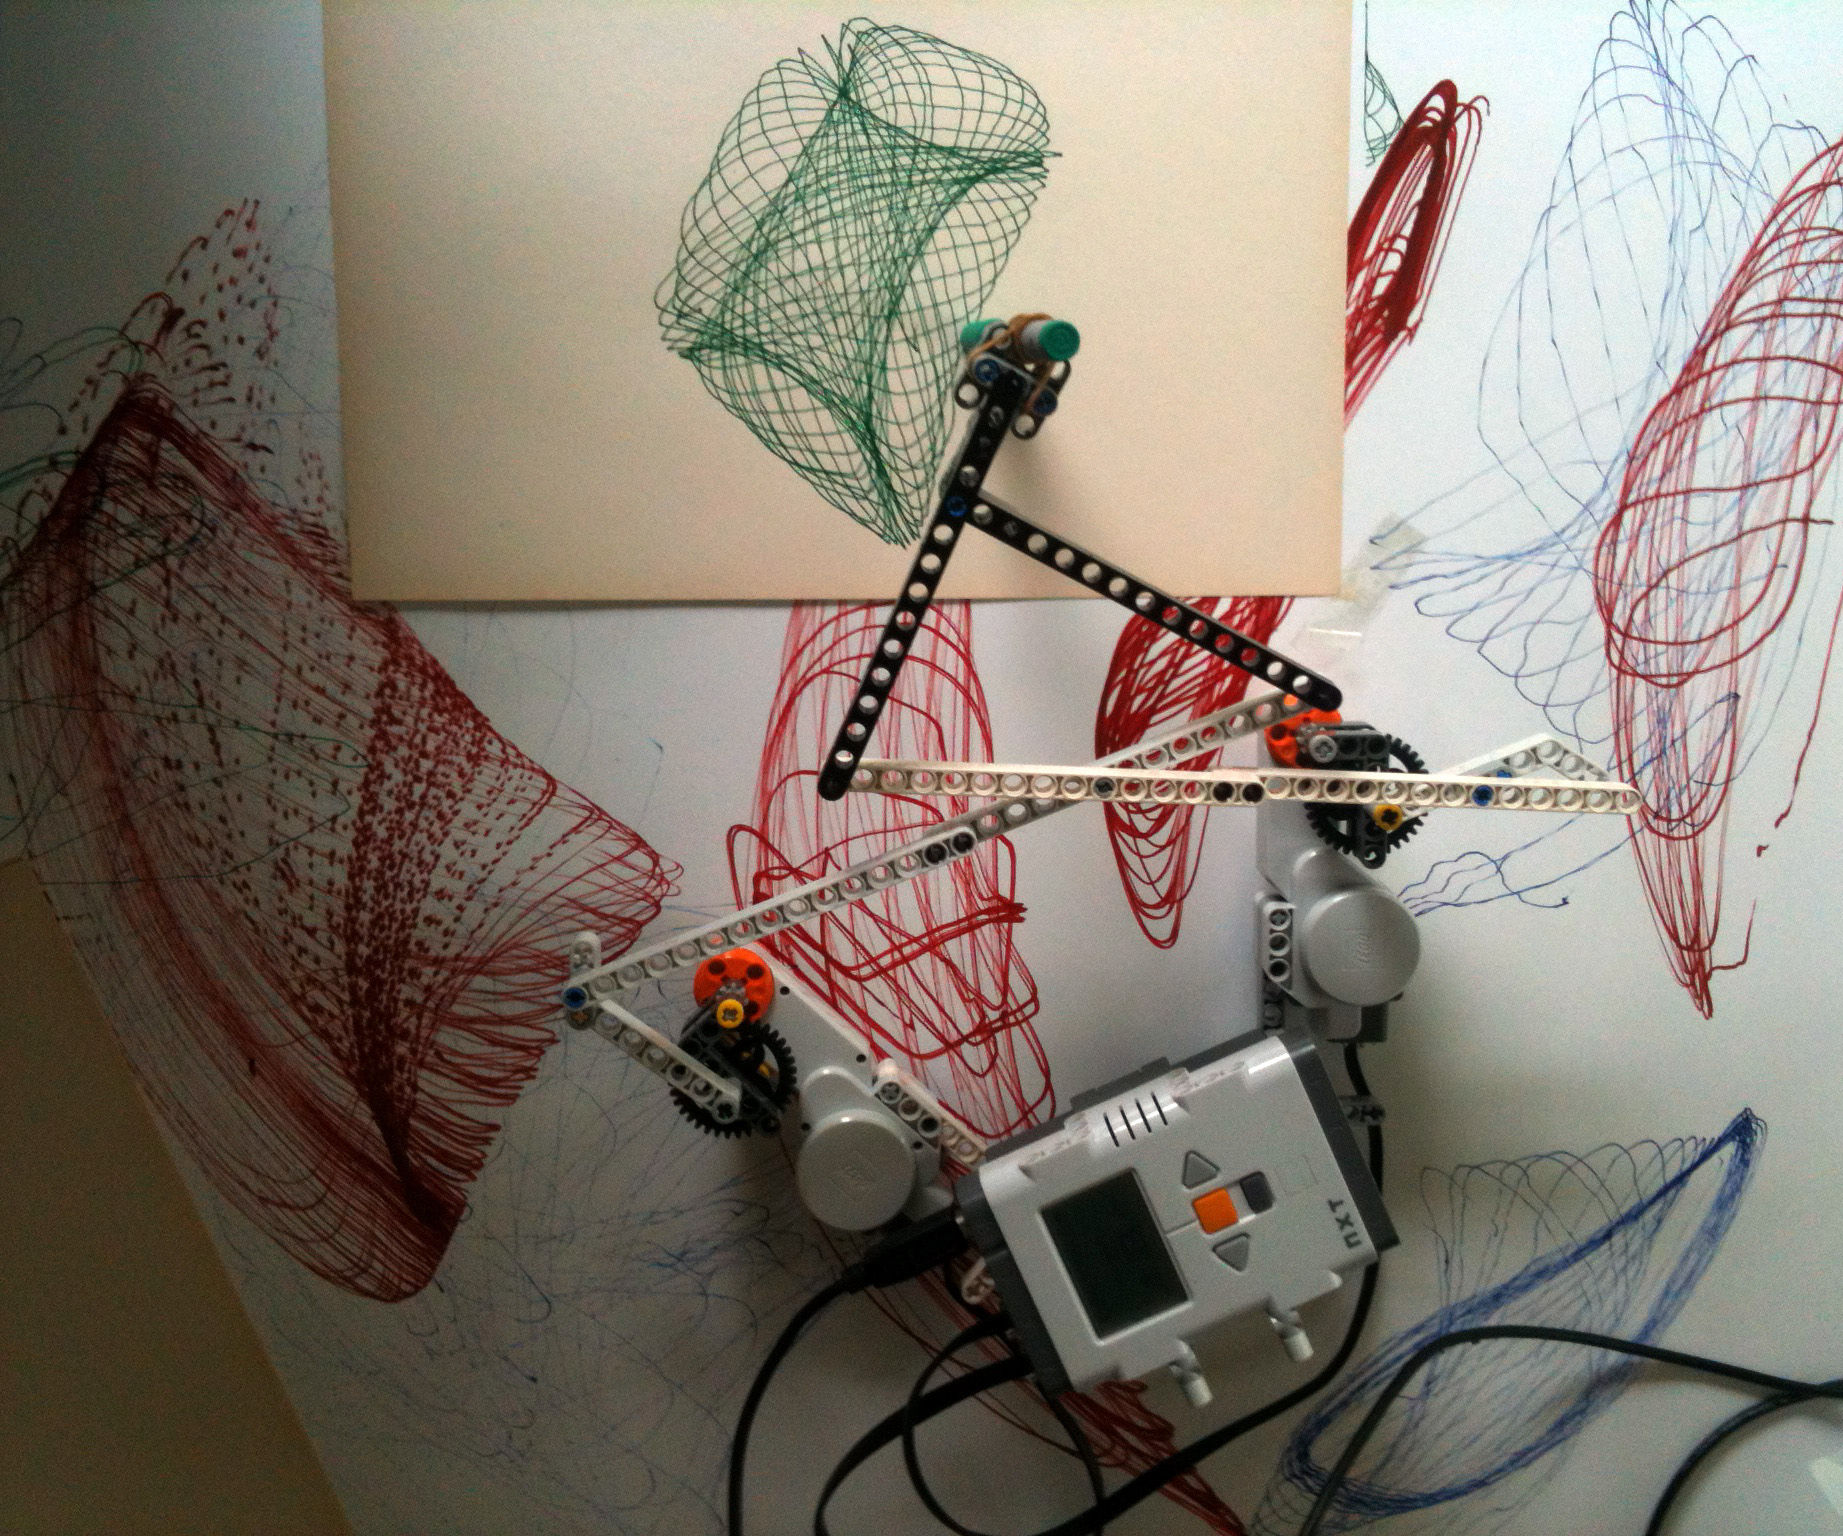 Building a Drawbot with LEGO